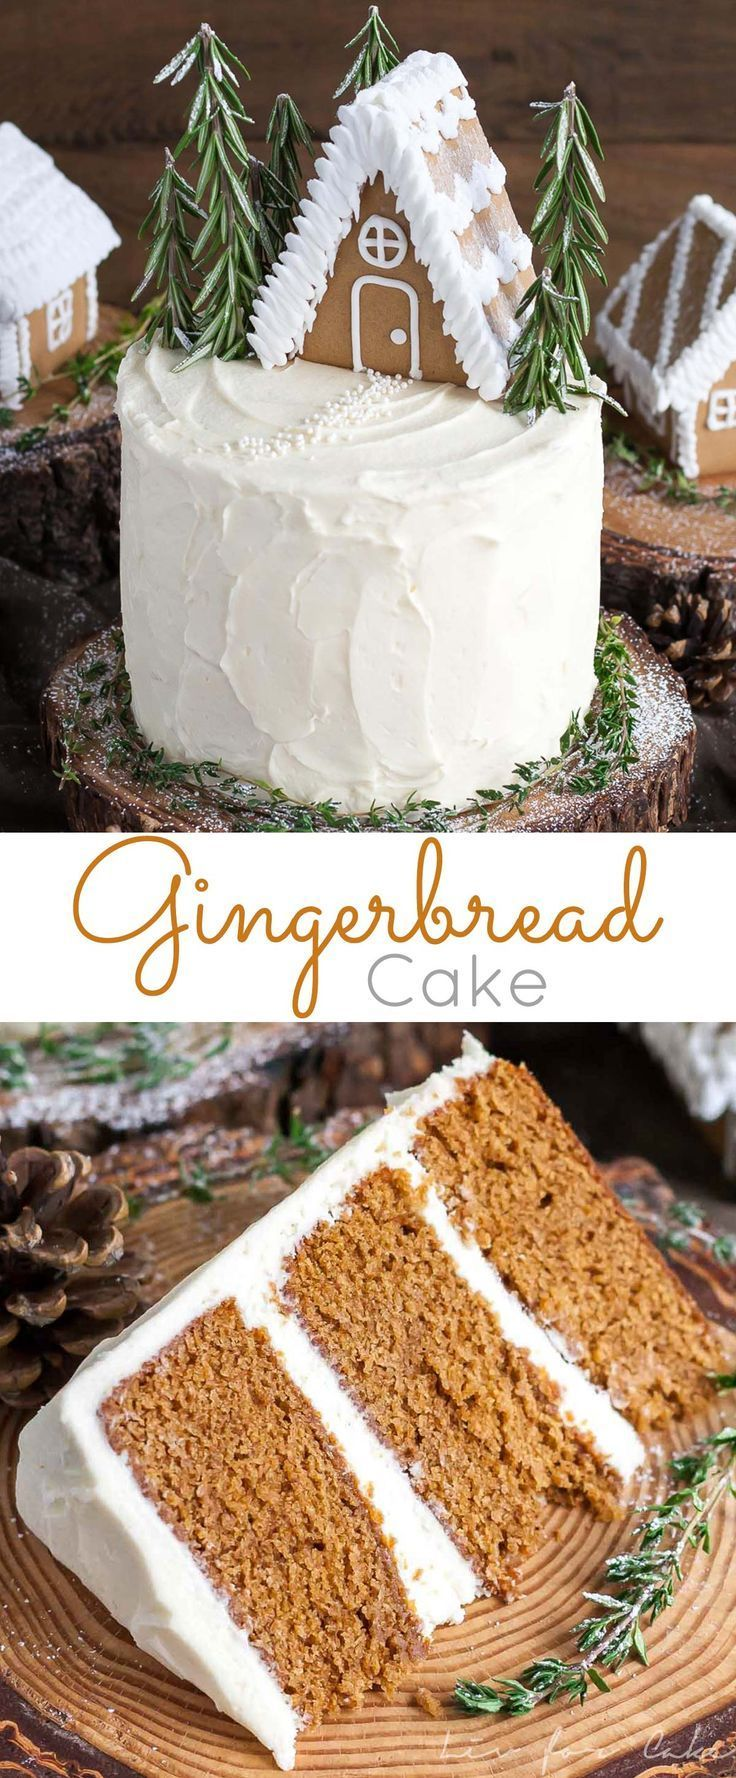 This Gingerbread Cake is perfect for the holidays! A moist and delicious ginger ca